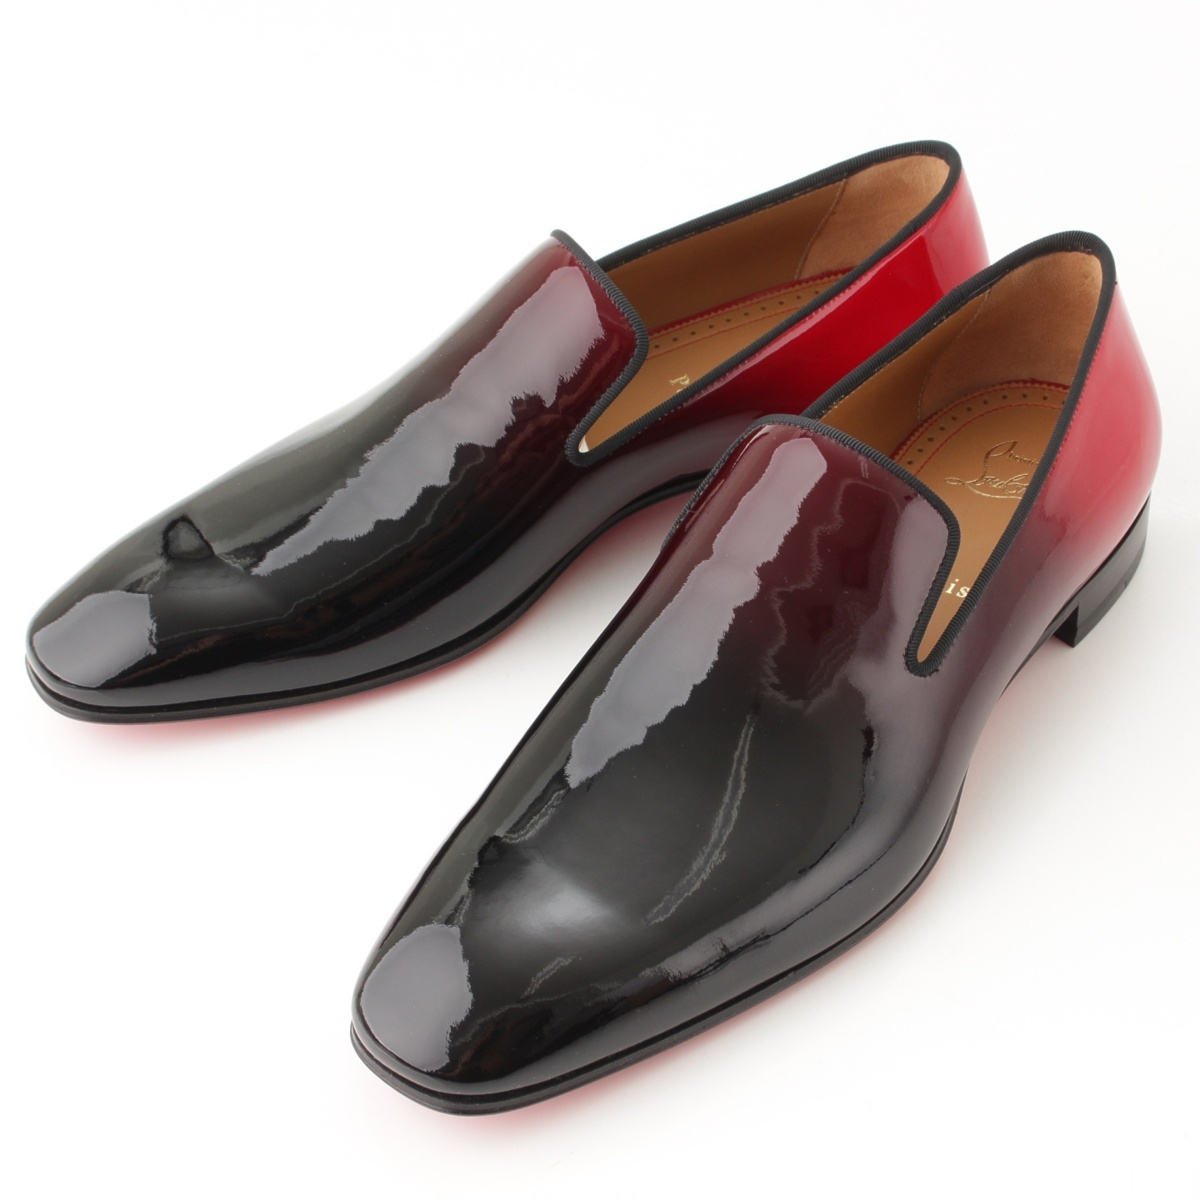 finest selection e568a dd4d6 Christian Louboutin act product Dandelion Flat men patent flattie black X  red 42-free 61658